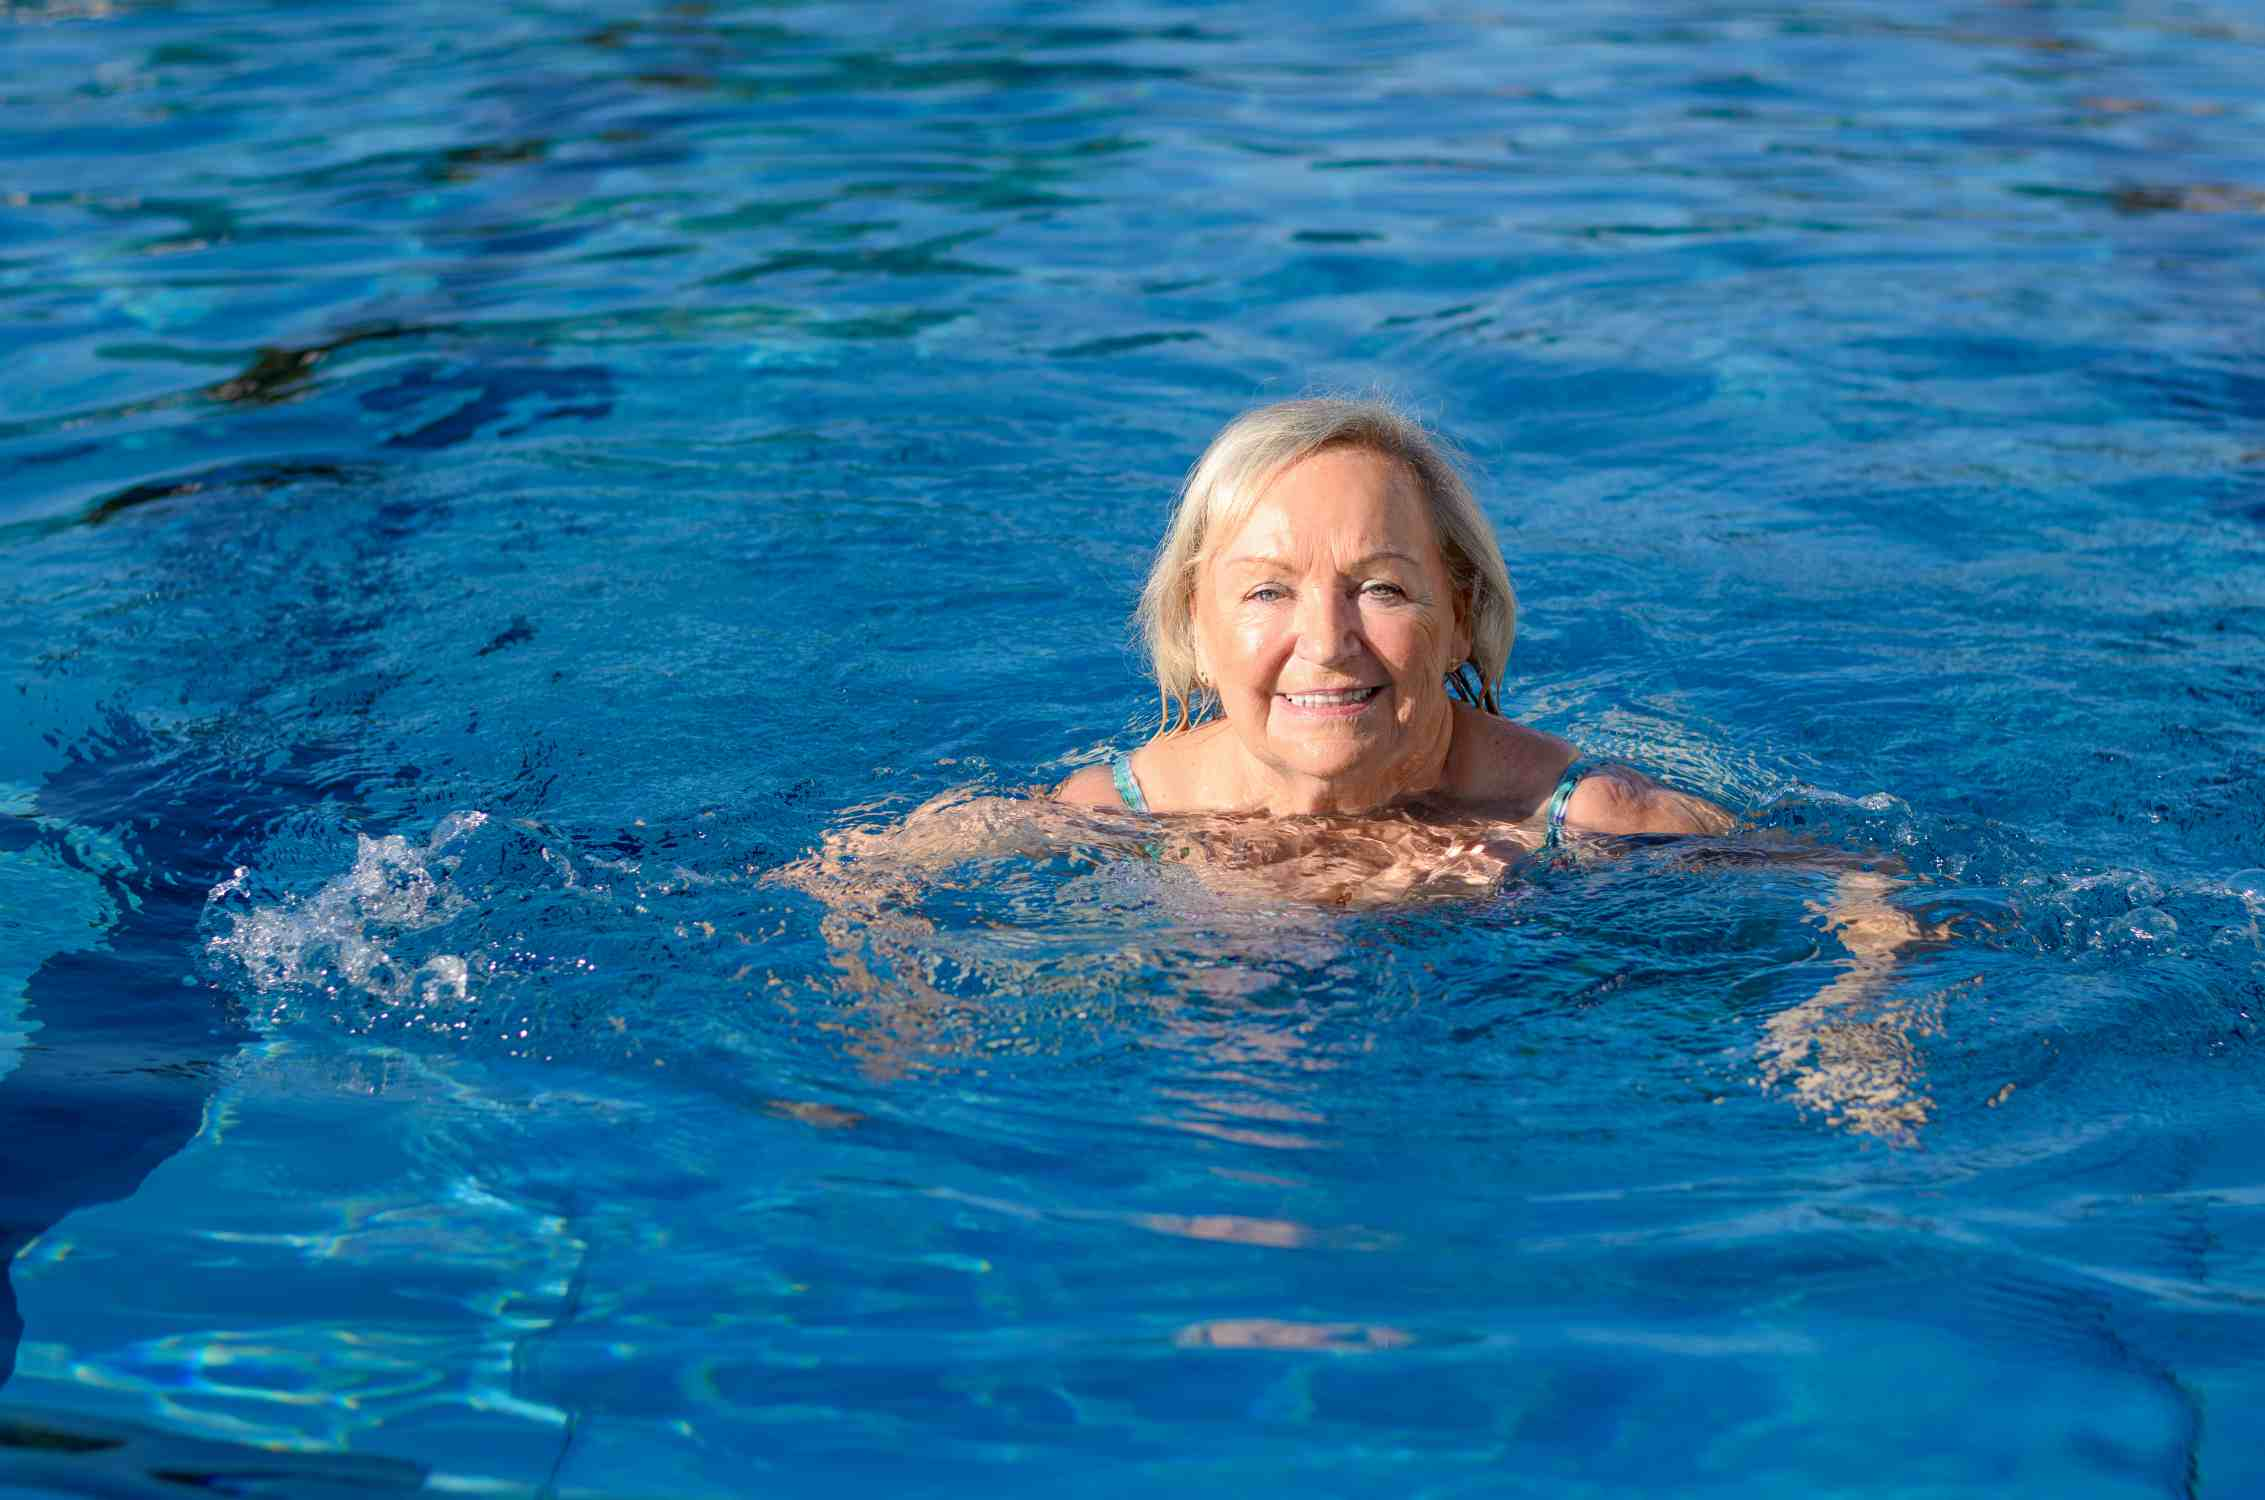 Water exercise for pain